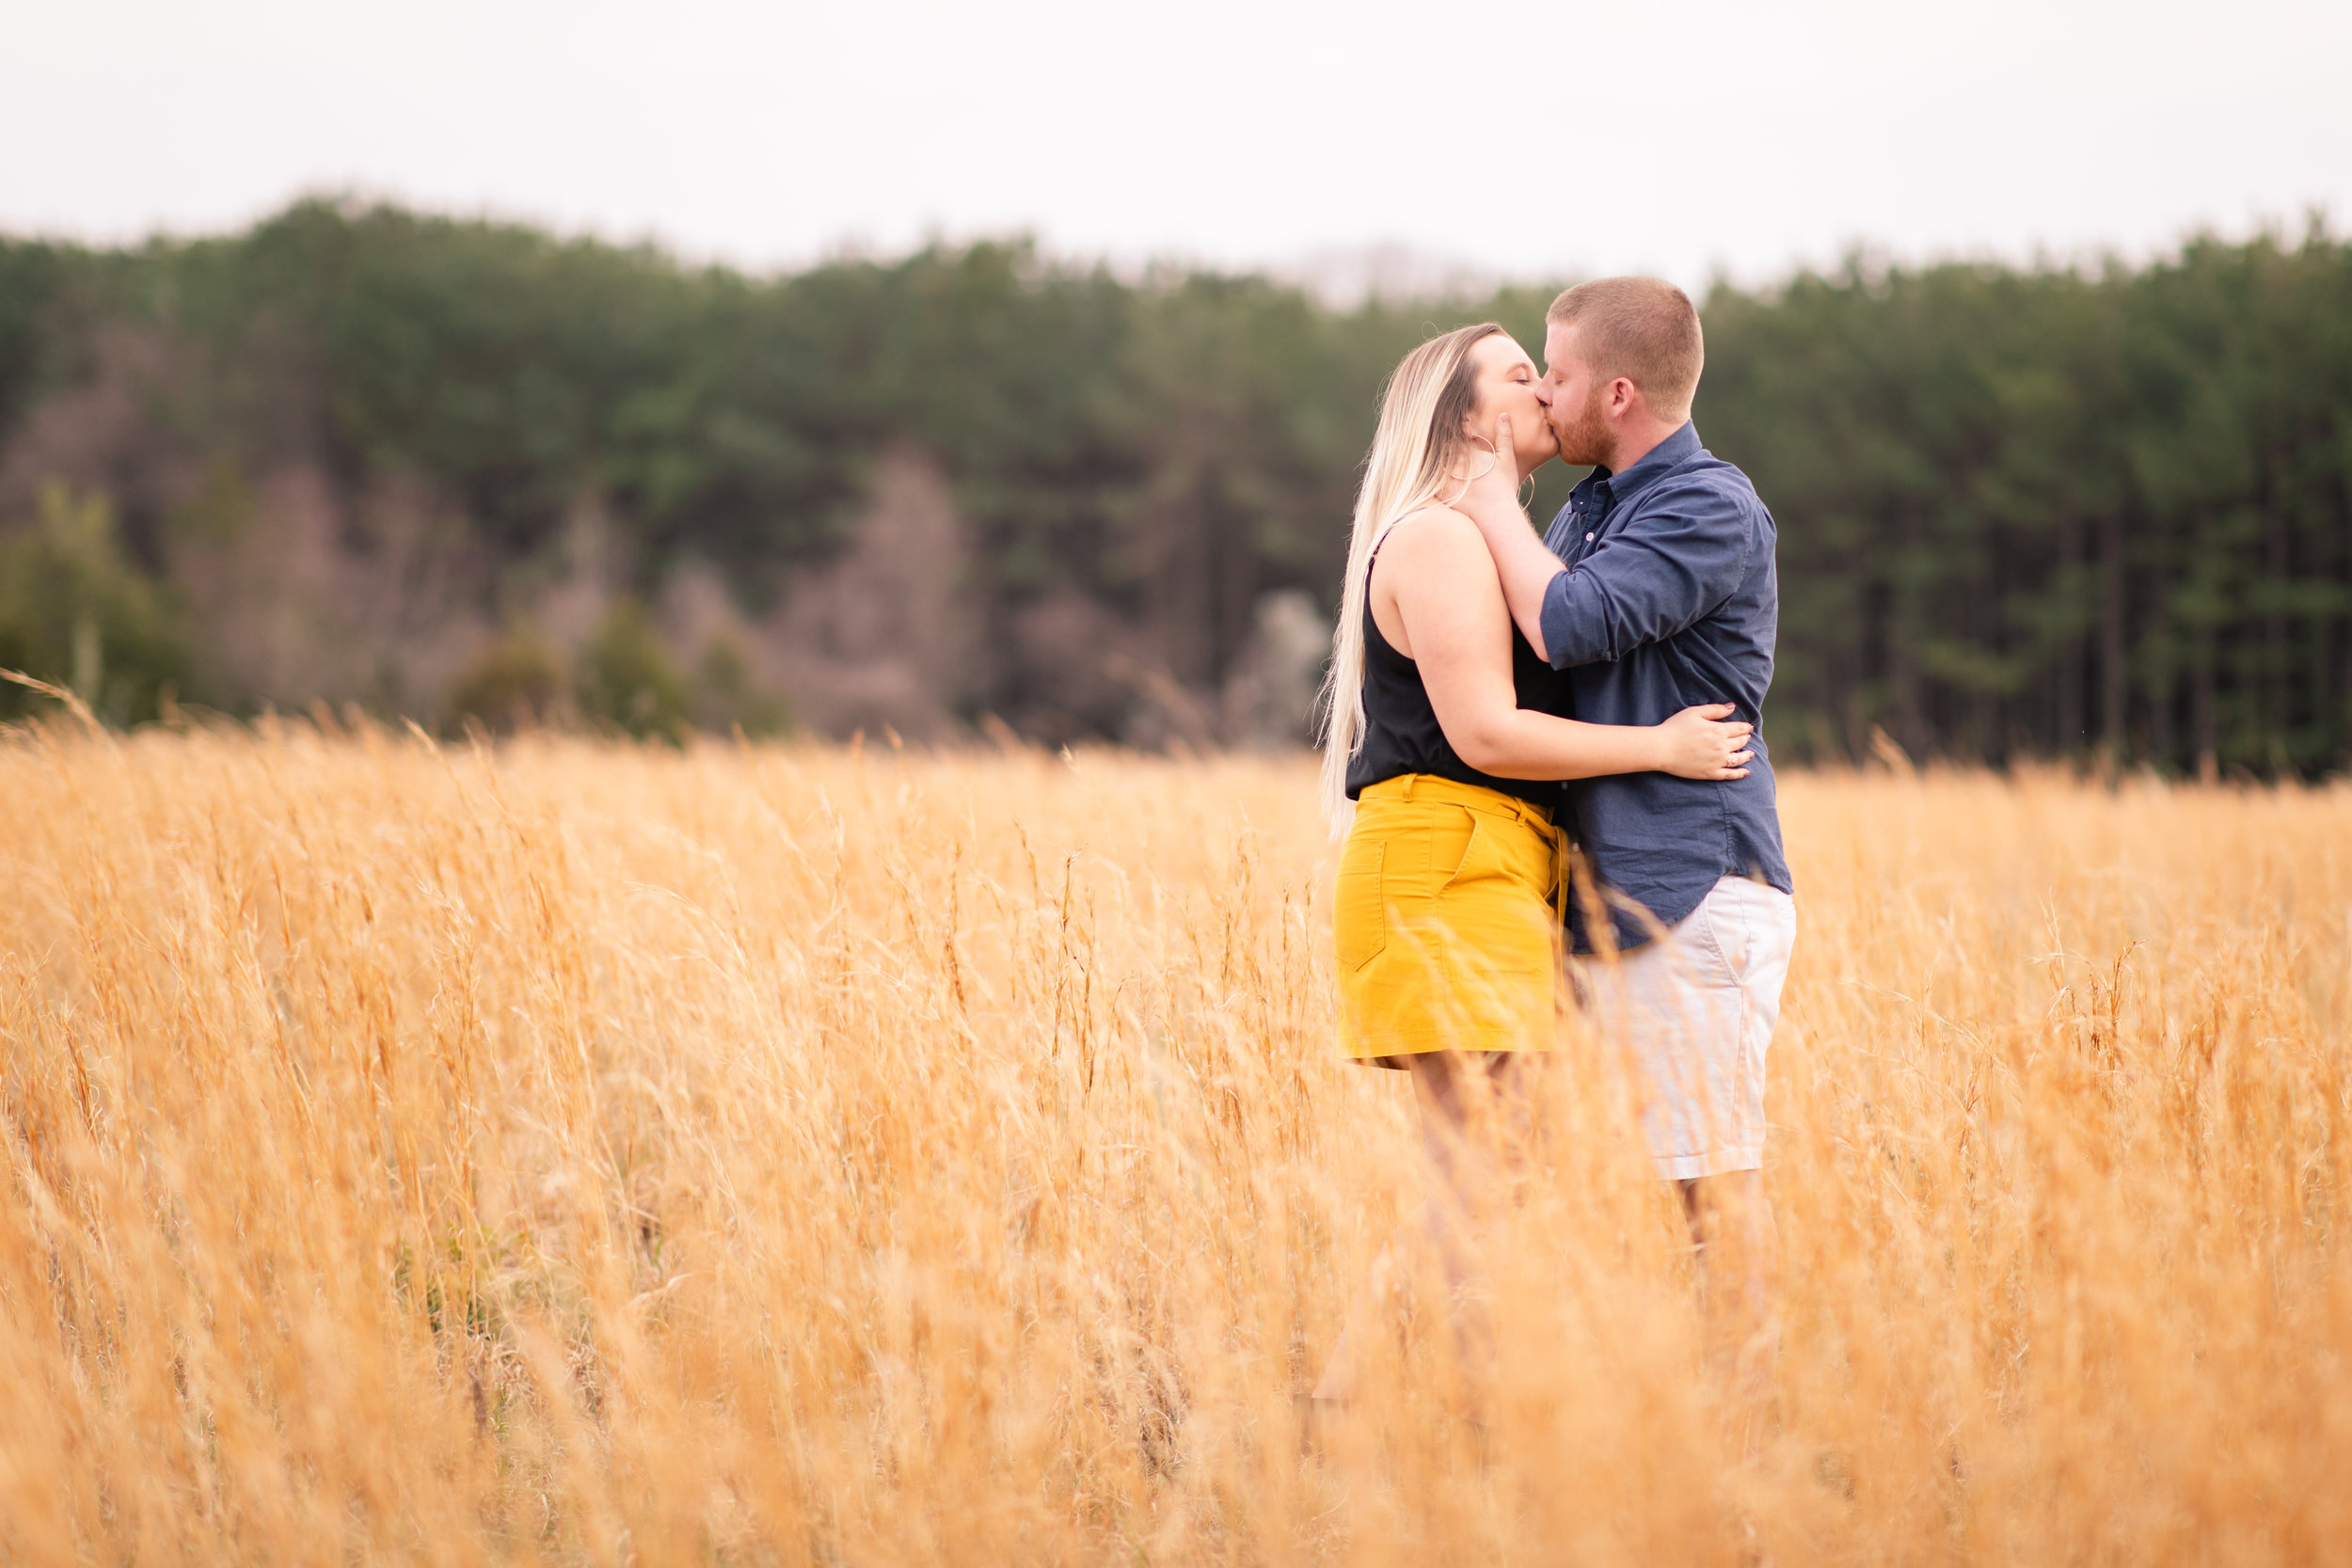 Check out Joe and Bobie's Engagement Session  HERE